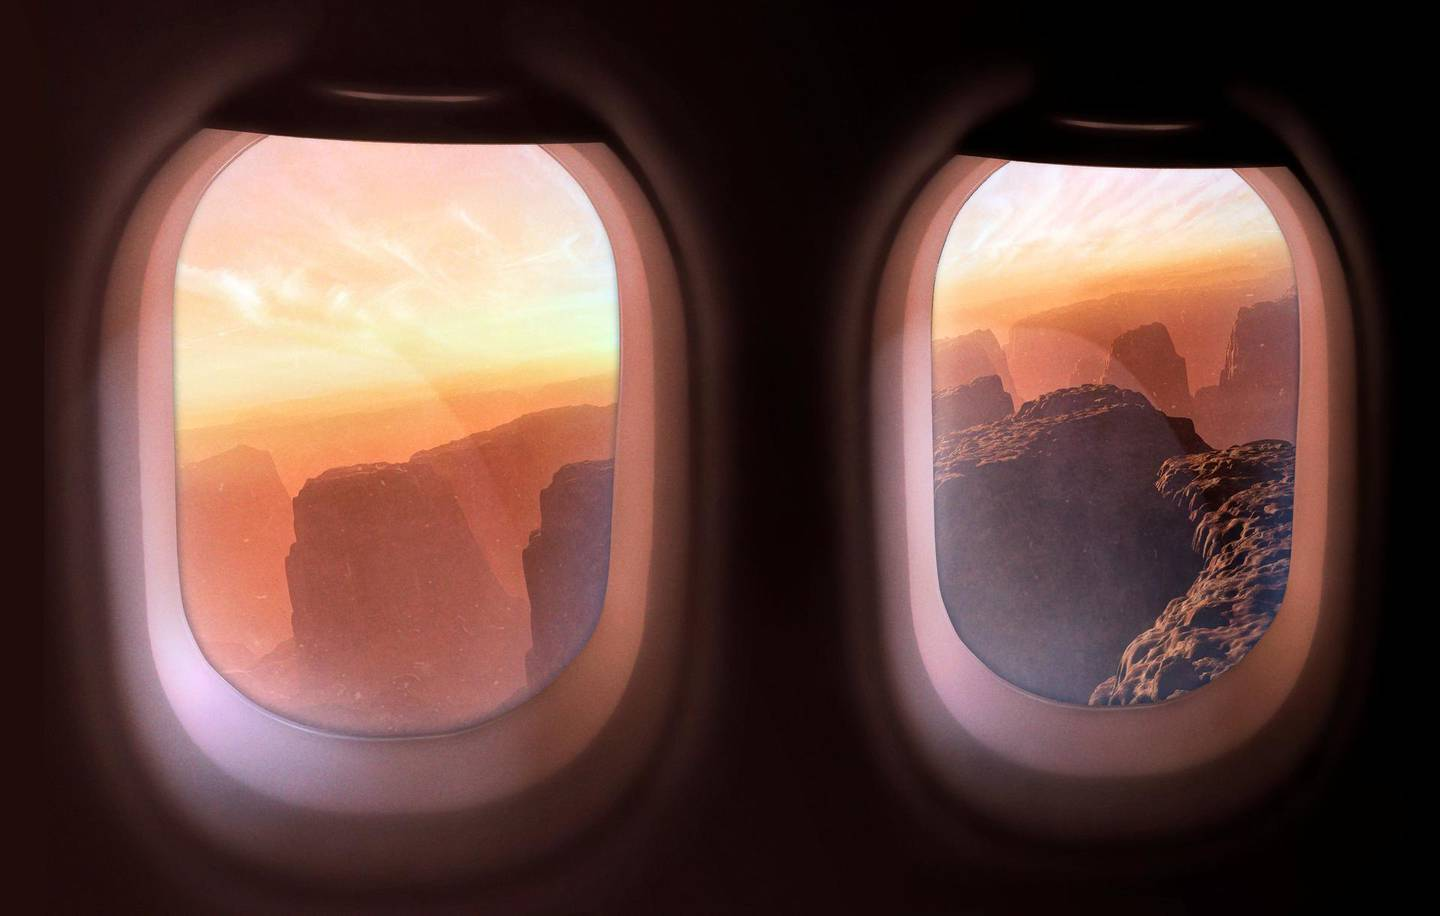 The surface of Mars, as glimpsed through the windows of a craft, some time in the future. Mars is the most Earth-like planet in the known Solar System; it is the target of much research, and a potential venue for a permanent colony of humans. This scene perhaps imagines a future where the planet has been colonised and tourists are able to visit the planet in specially adapted aerial craft. Or maybe this is the view from an incoming craft, bringing more people to live on Mars.